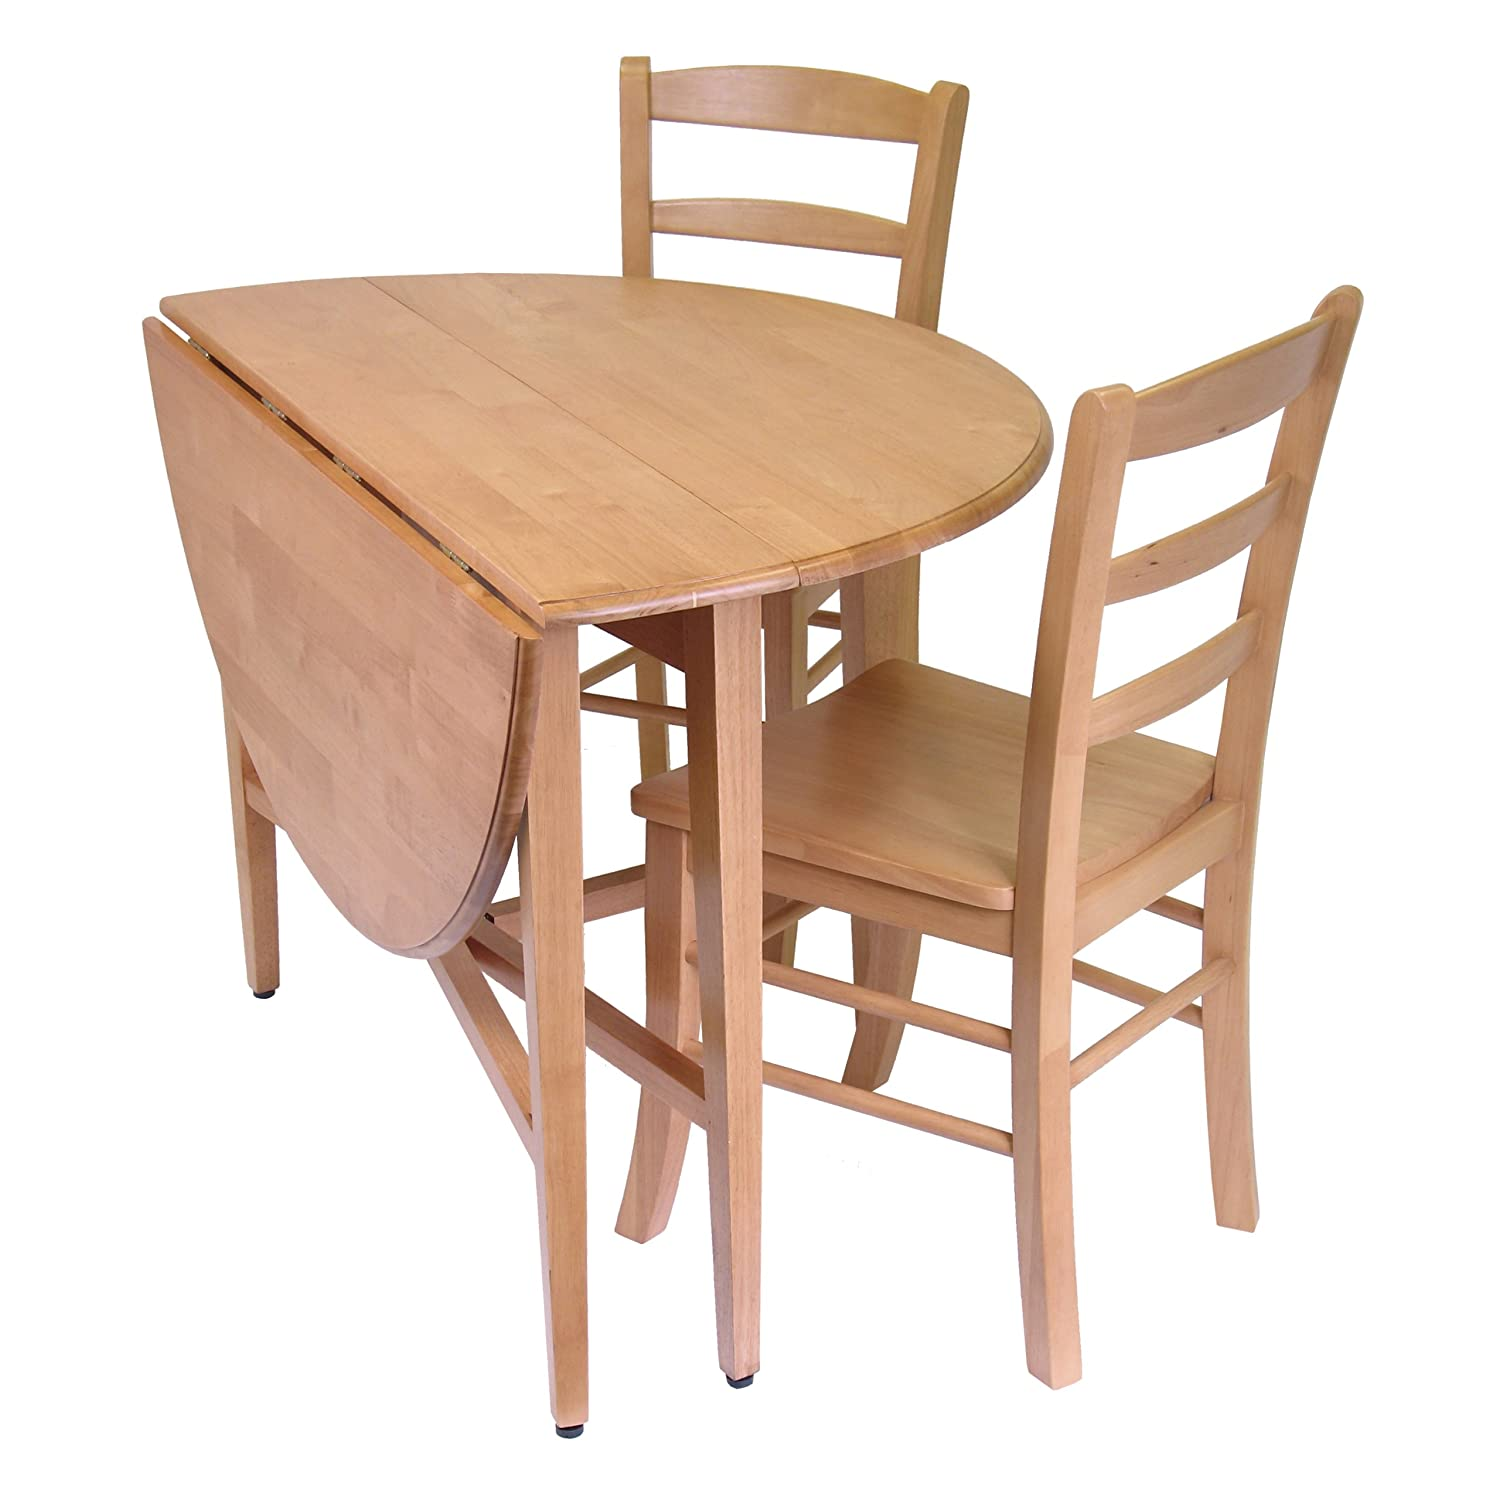 Drop Leaf Table With Chairs Light Oak Finish Dining Set 42 Inch Double Drop Leaf Table